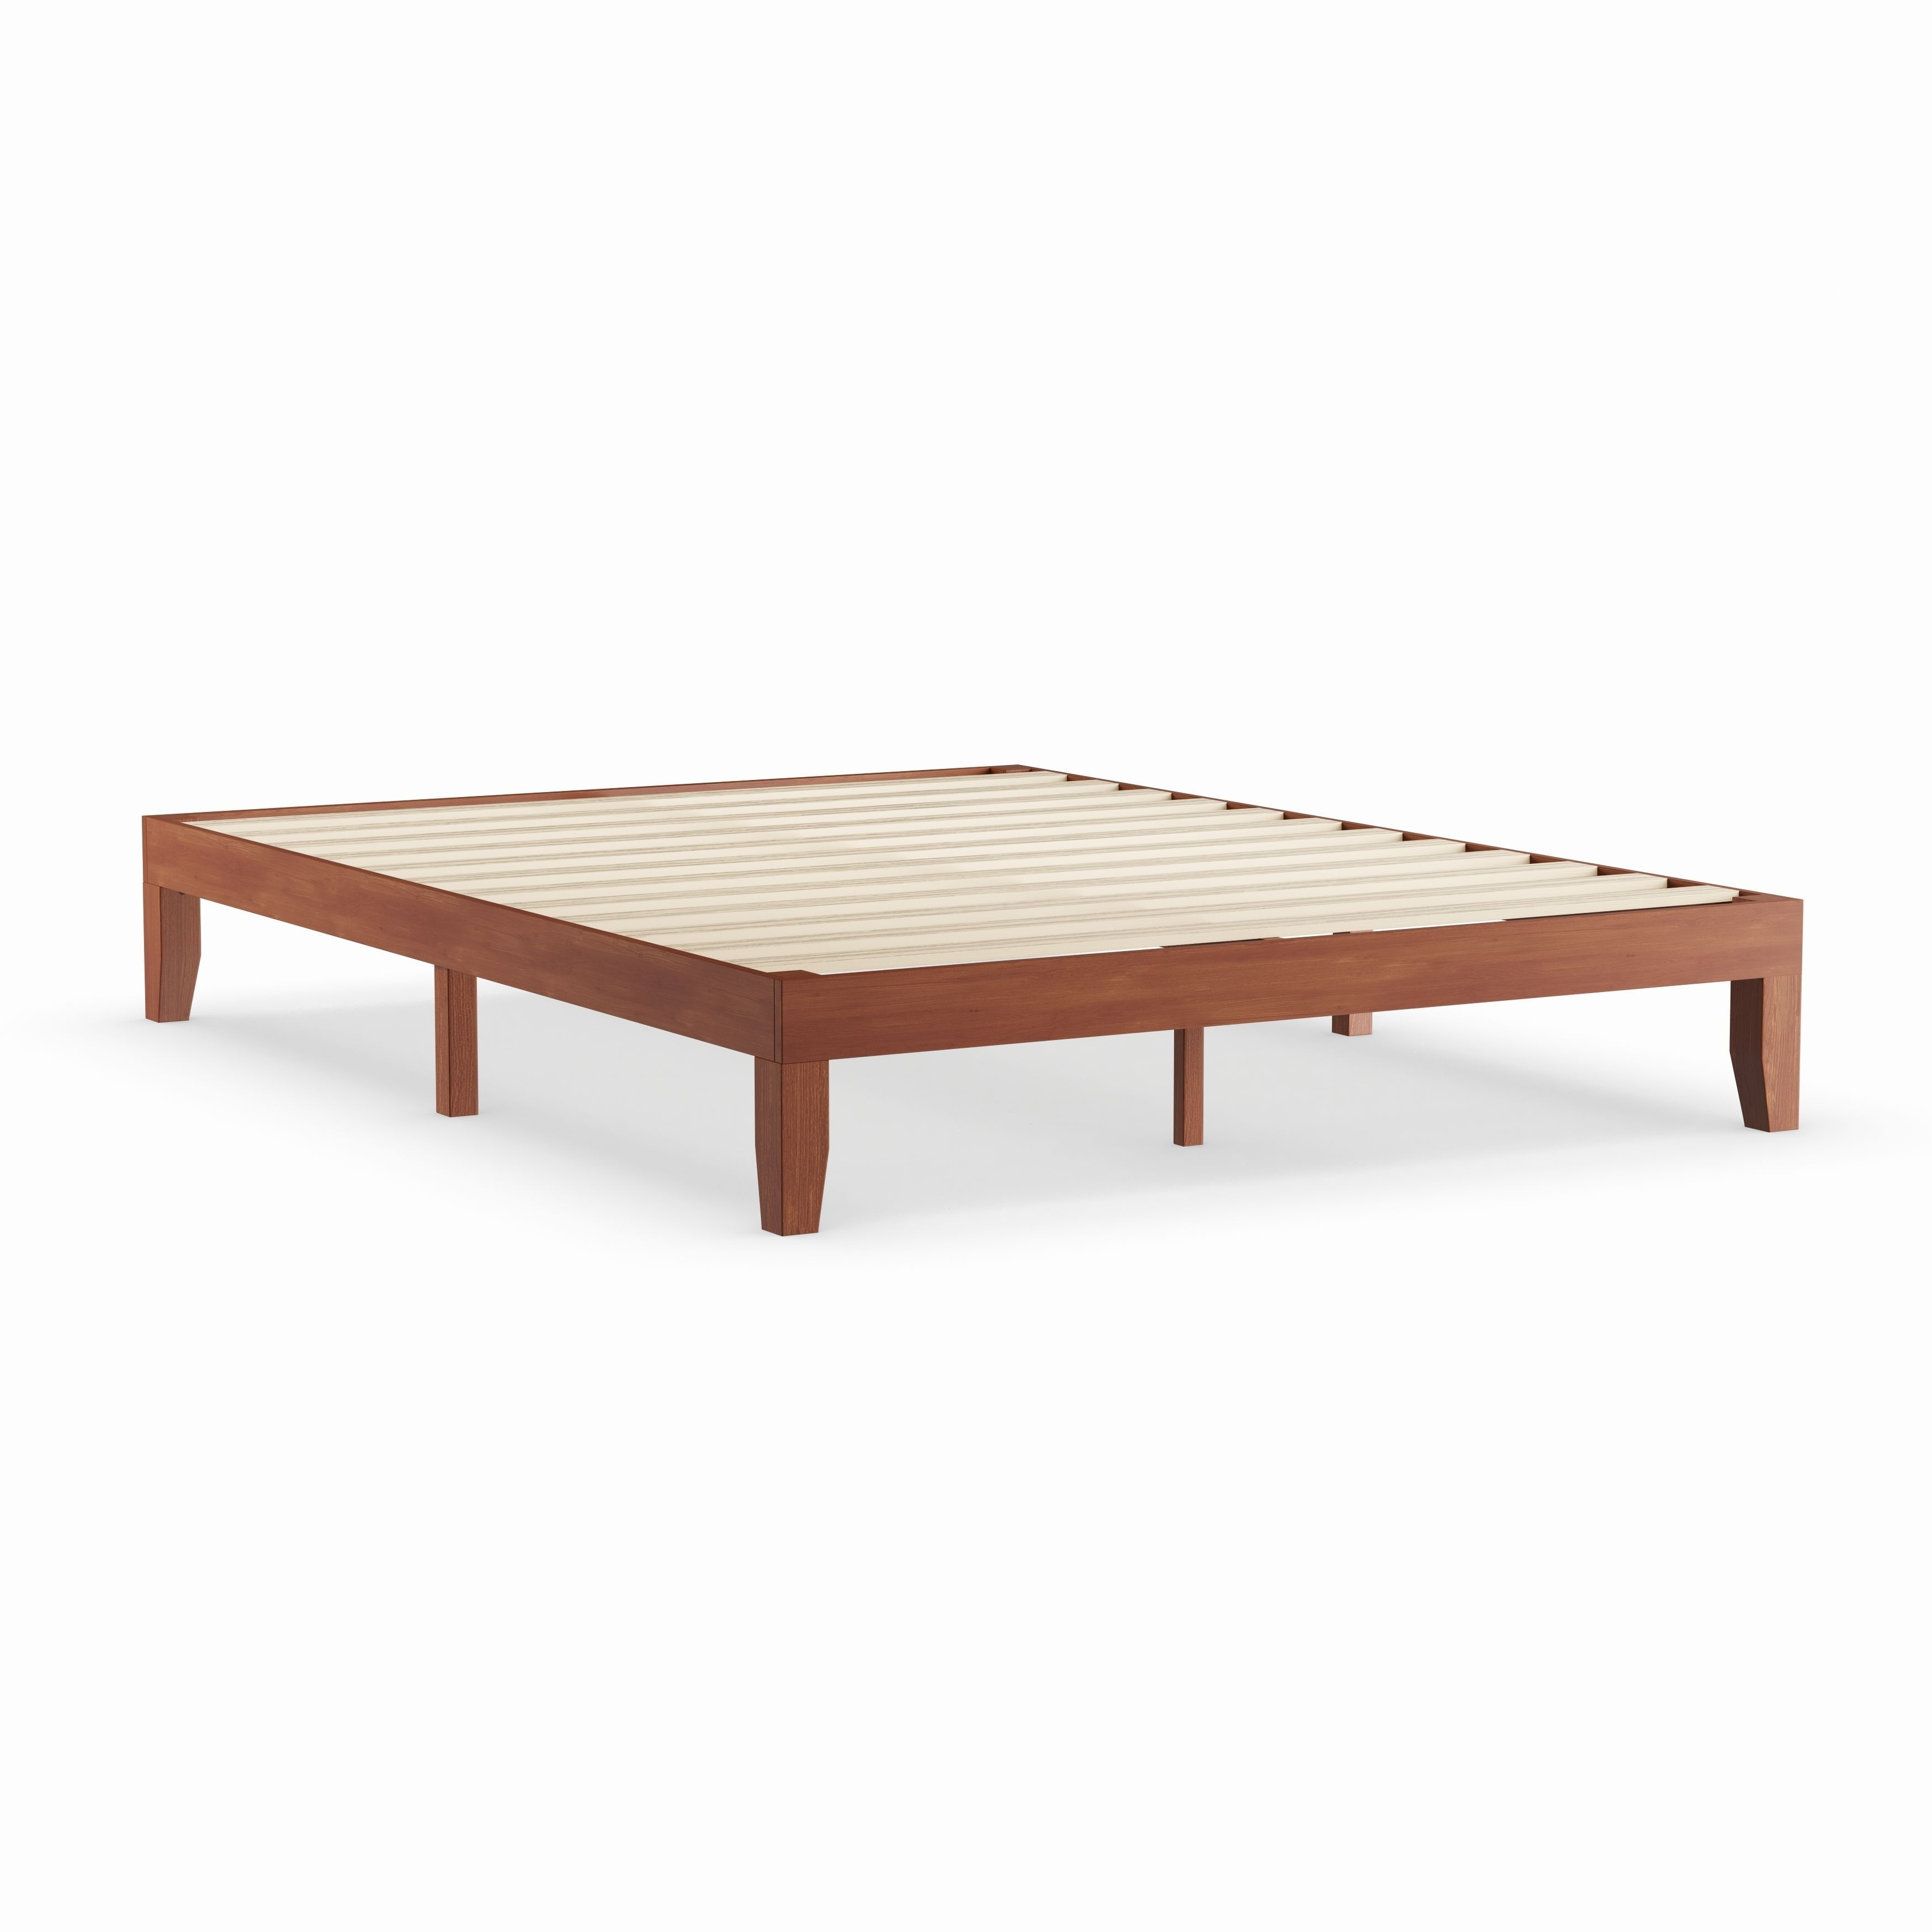 Buy Beds Online at Our Best Bedroom